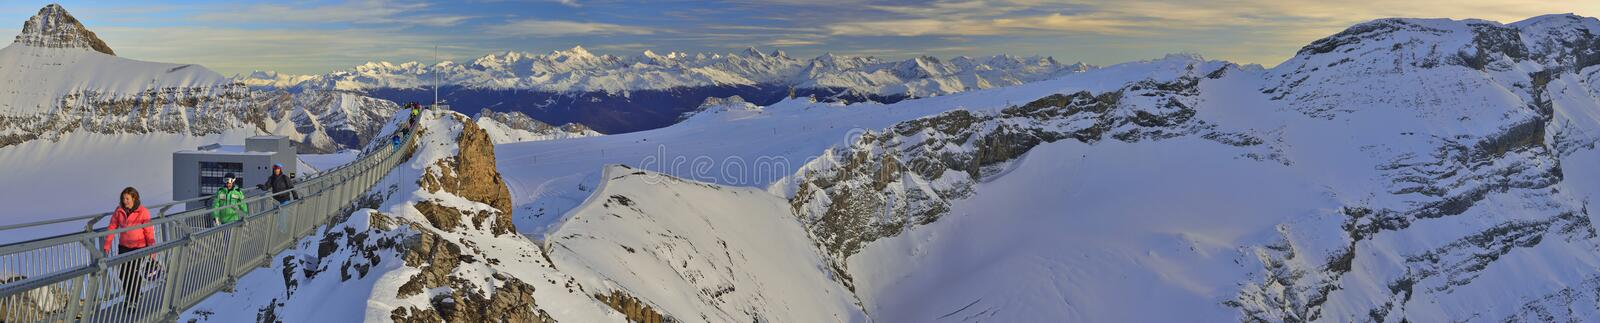 Panoramic view of Glacier 3000 from Les Diablerets bridge.Gstaad. Panoramic view ski traks from Glacier 3000 bridge. Les Diablerets,Gstaad royalty free stock image